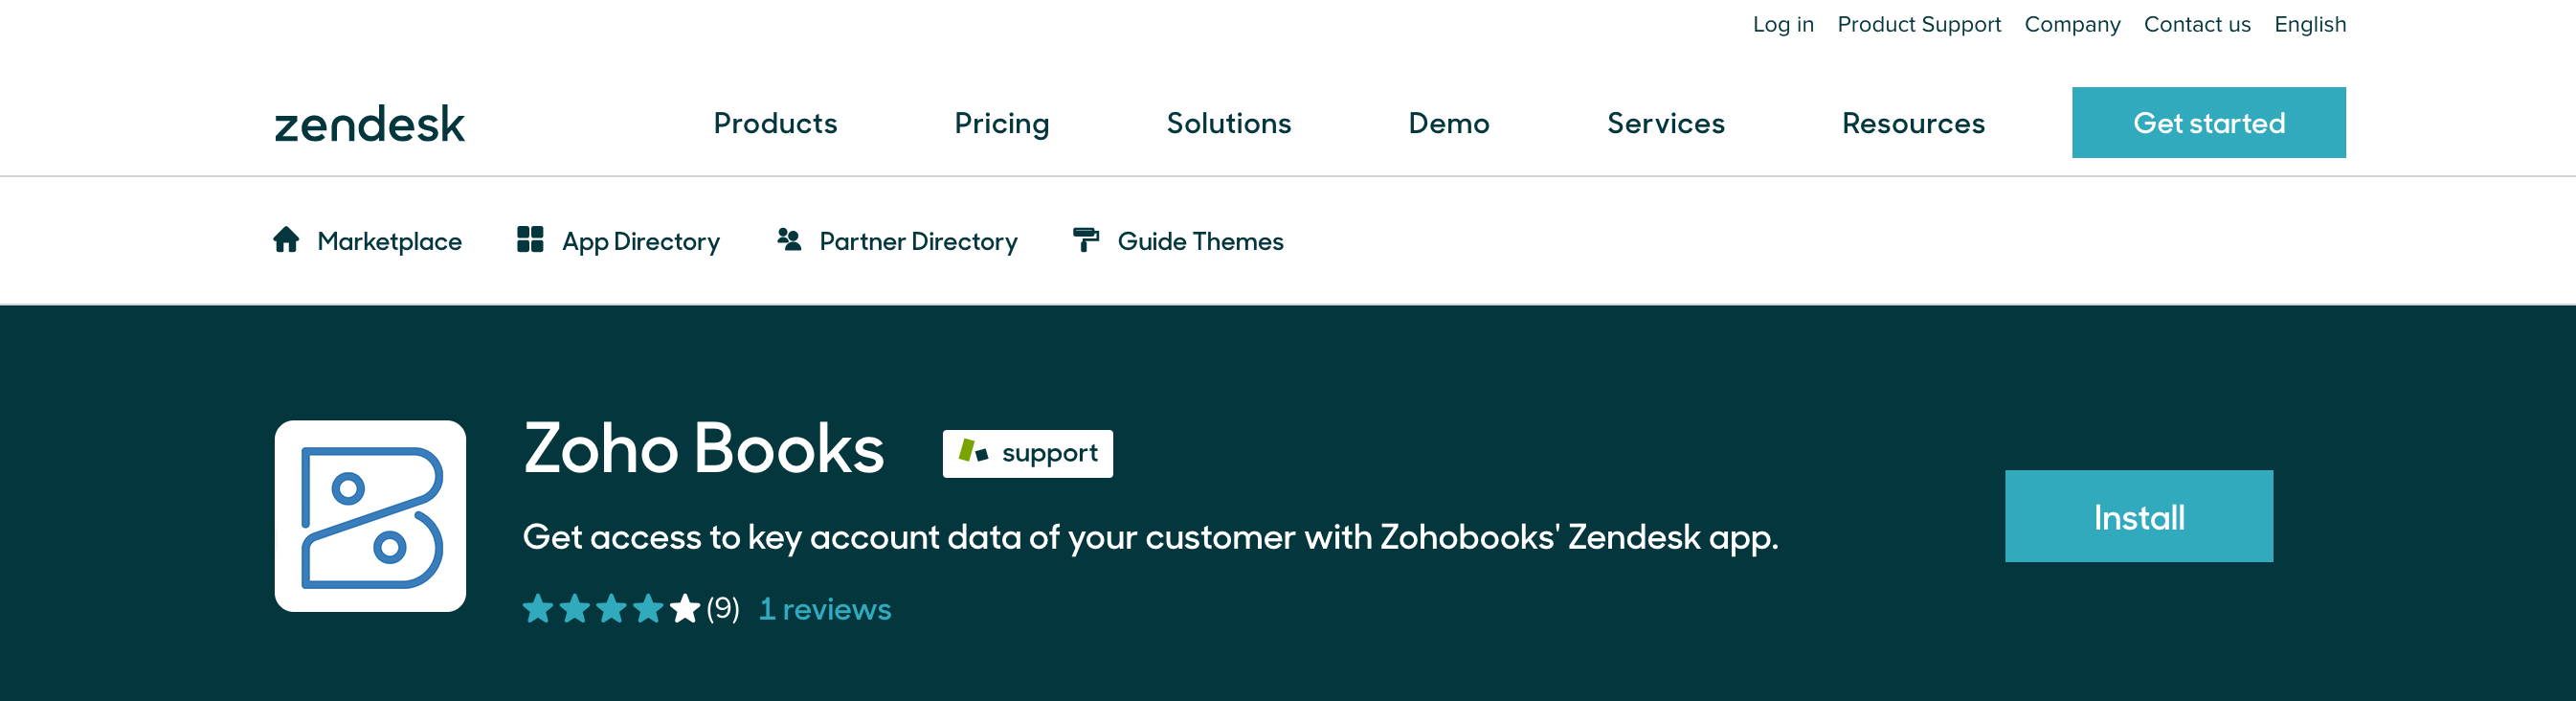 Install Zoho Books from Zendesk